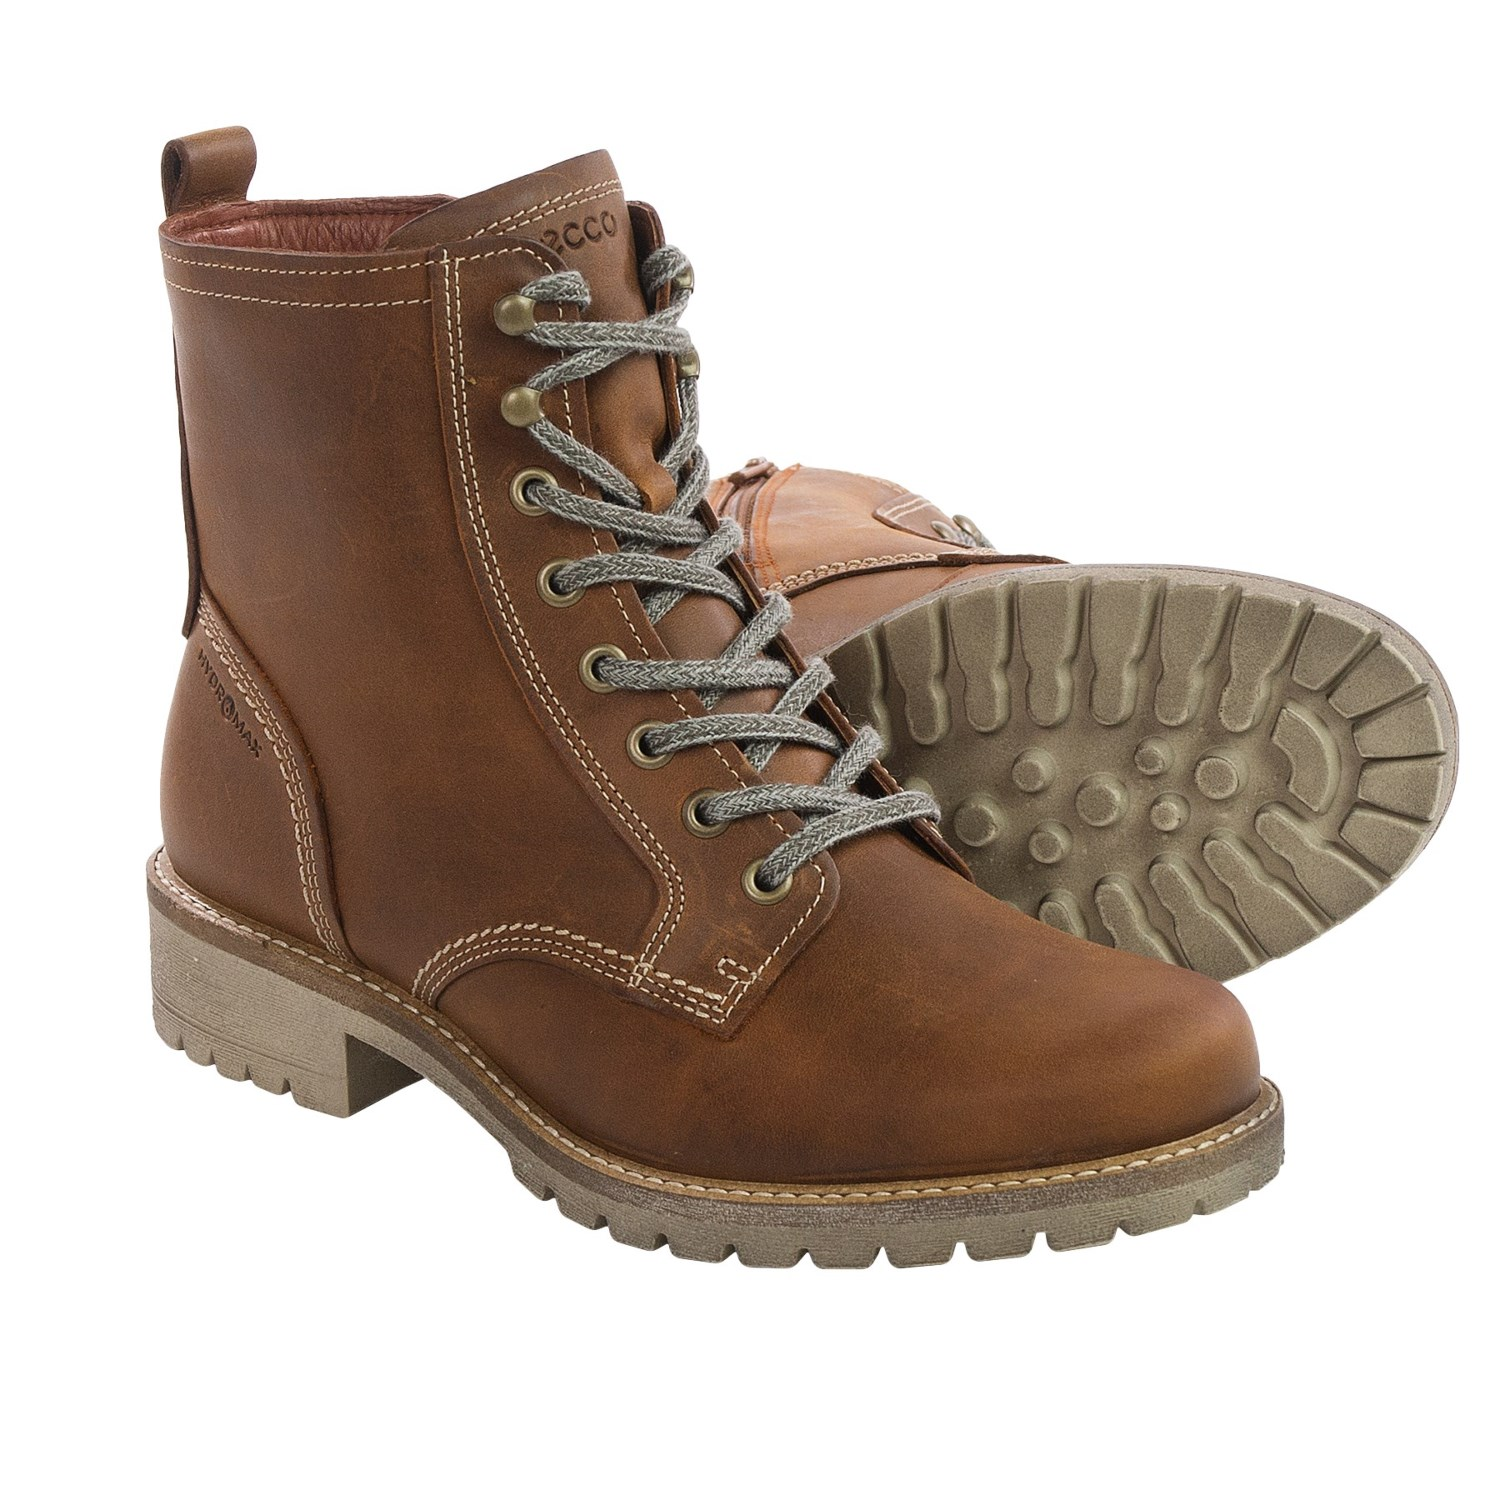 ECCO Elaine Leather Boots (For Women) - Save 33%